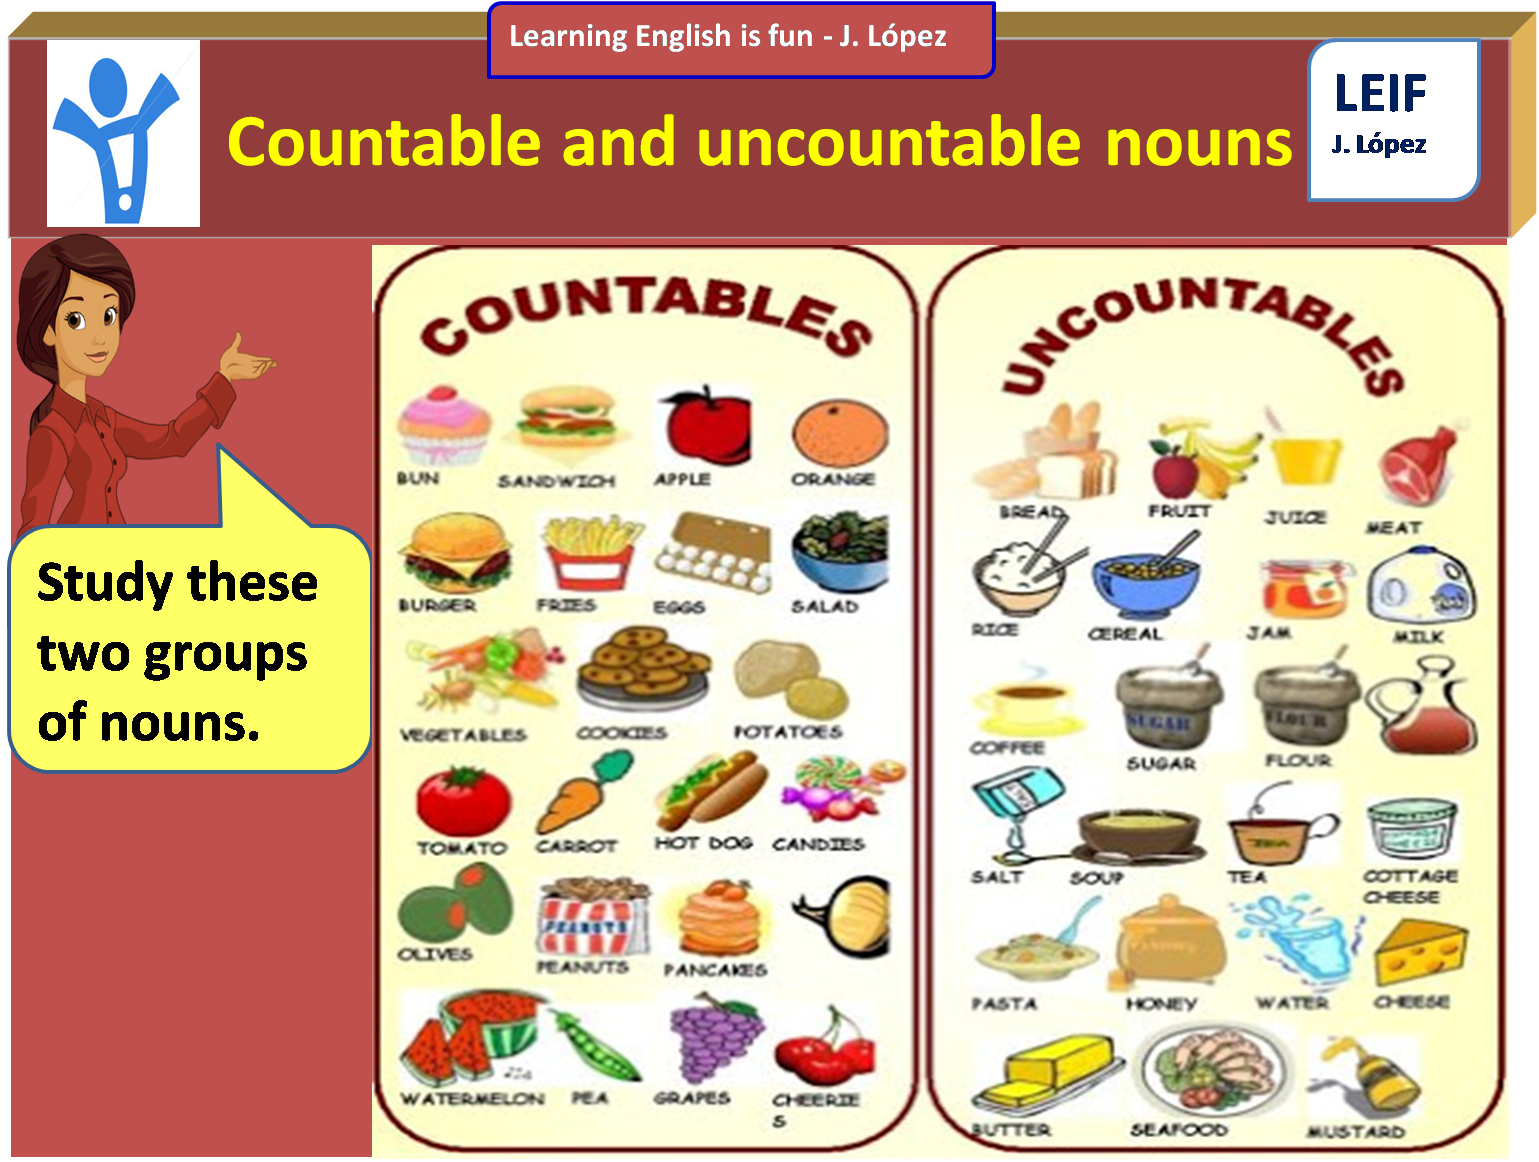 English Intermediate I U5 Countable And Uncountable Nouns